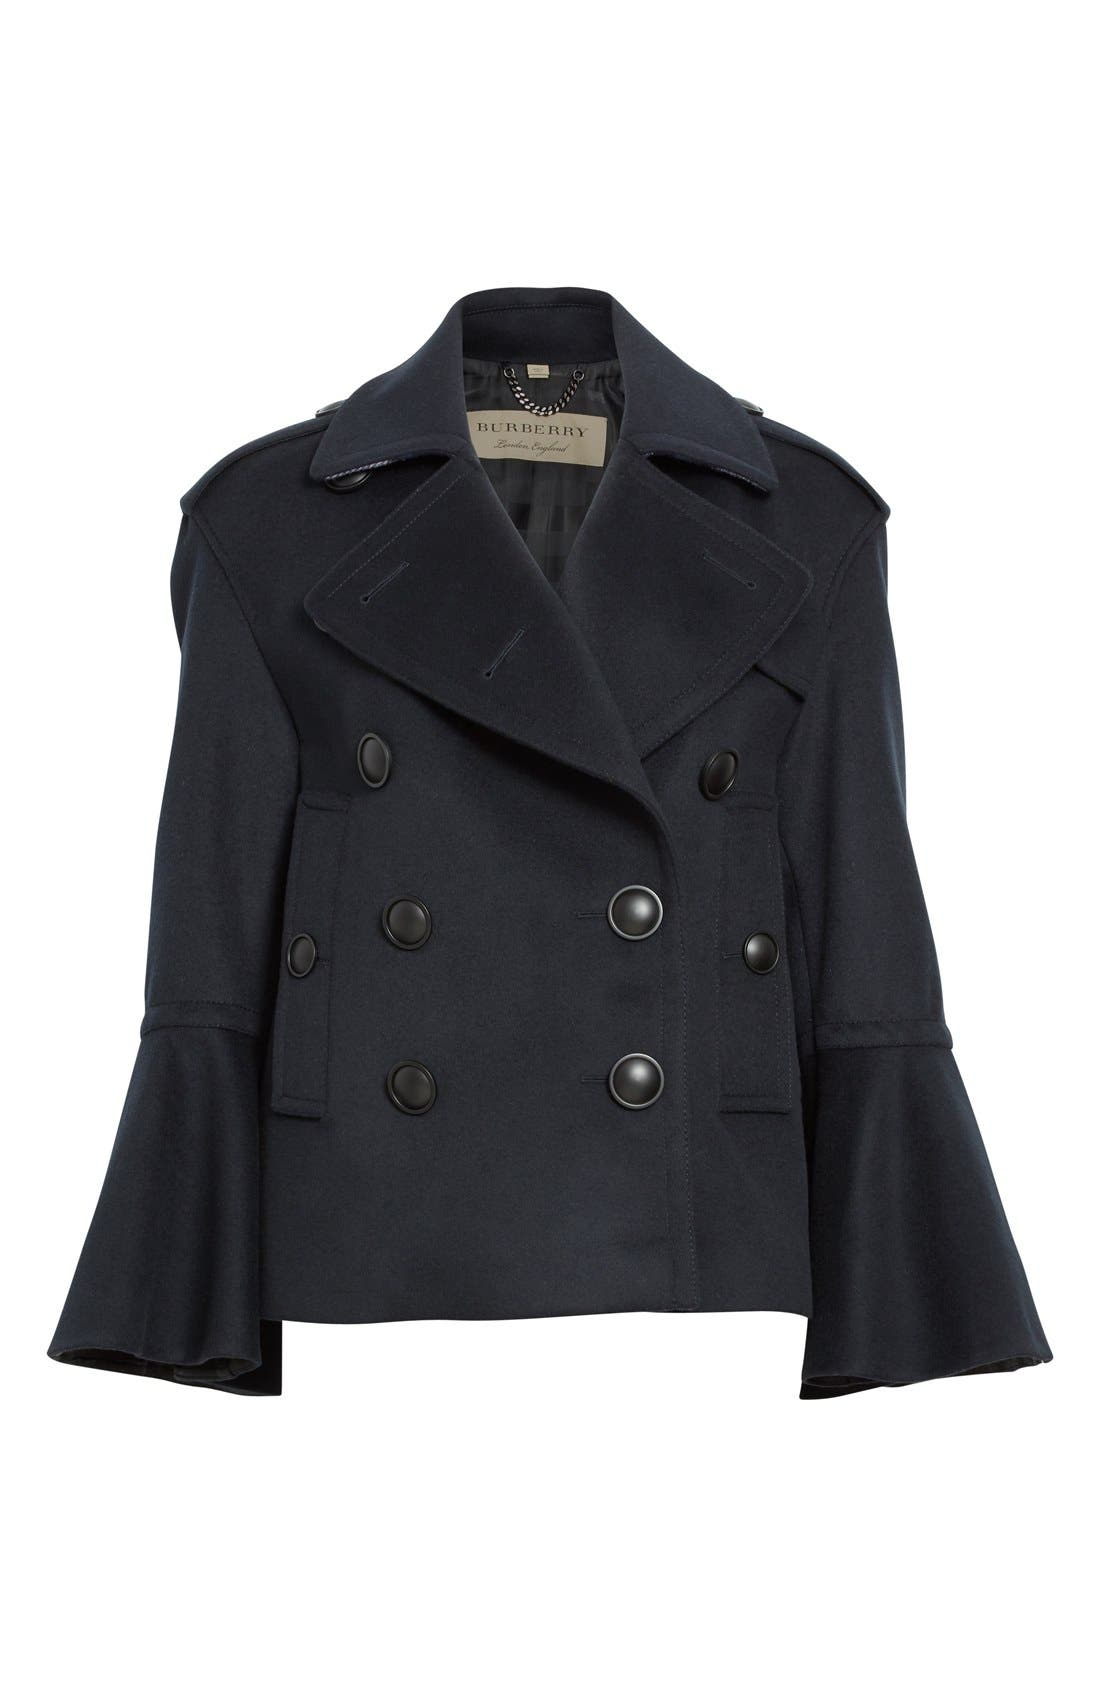 BURBERRY,                             Juliette Townhill Double Breasted Peacoat,                             Alternate thumbnail 6, color,                             410